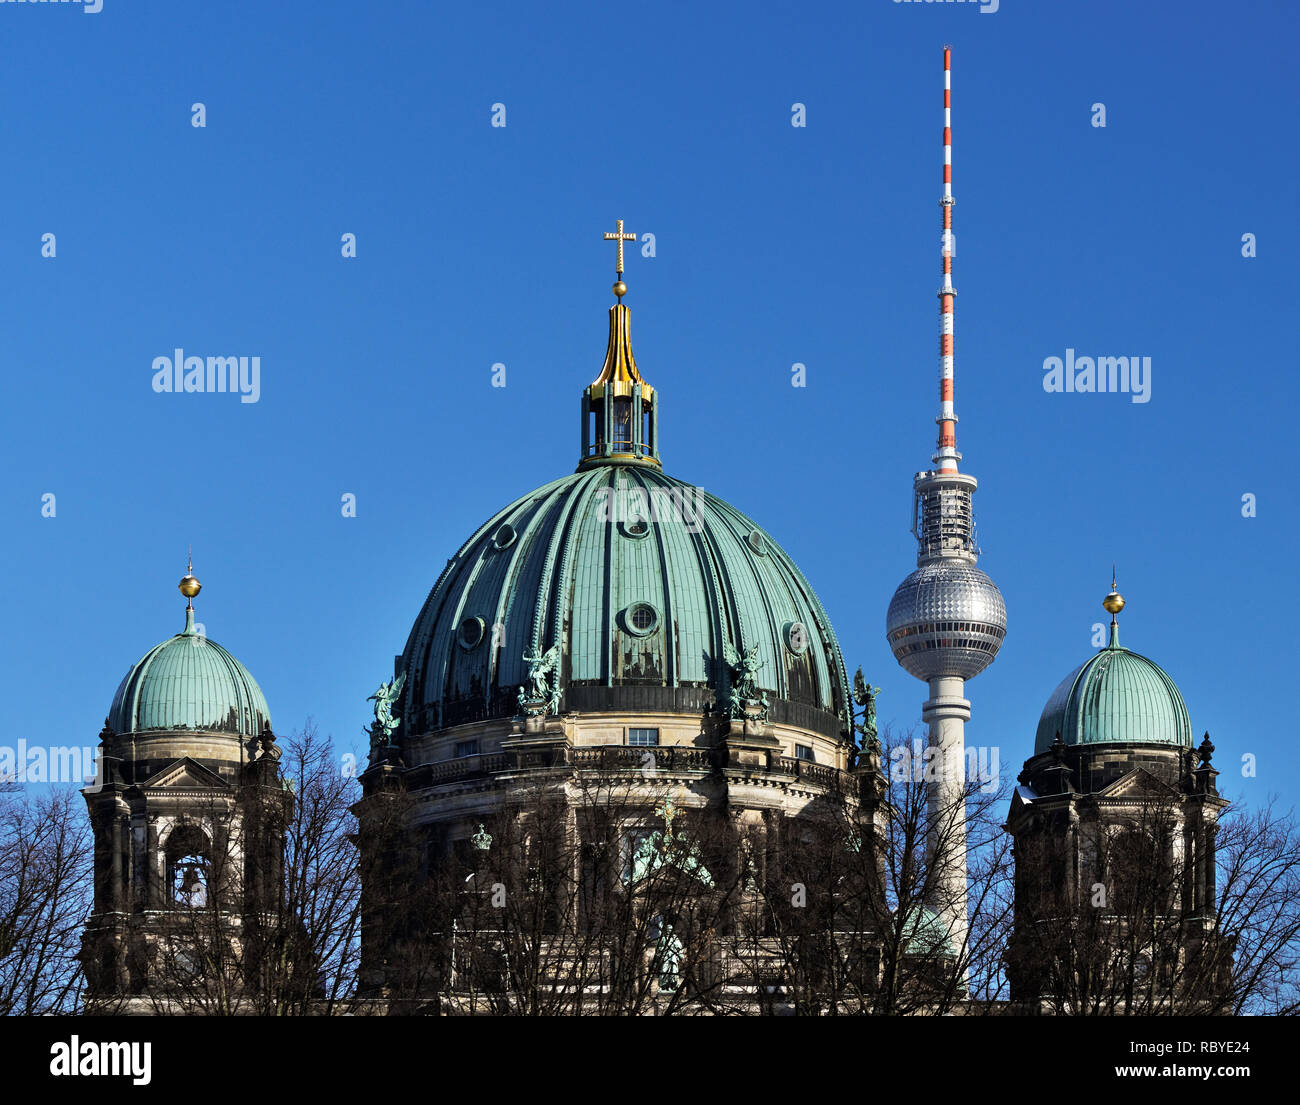 The Berlin Television Tower is positioned in the picture between two domes of the Berlin Cathedral - Location: Germany, Berlin, 'Am Zeughaus' - Stock Image